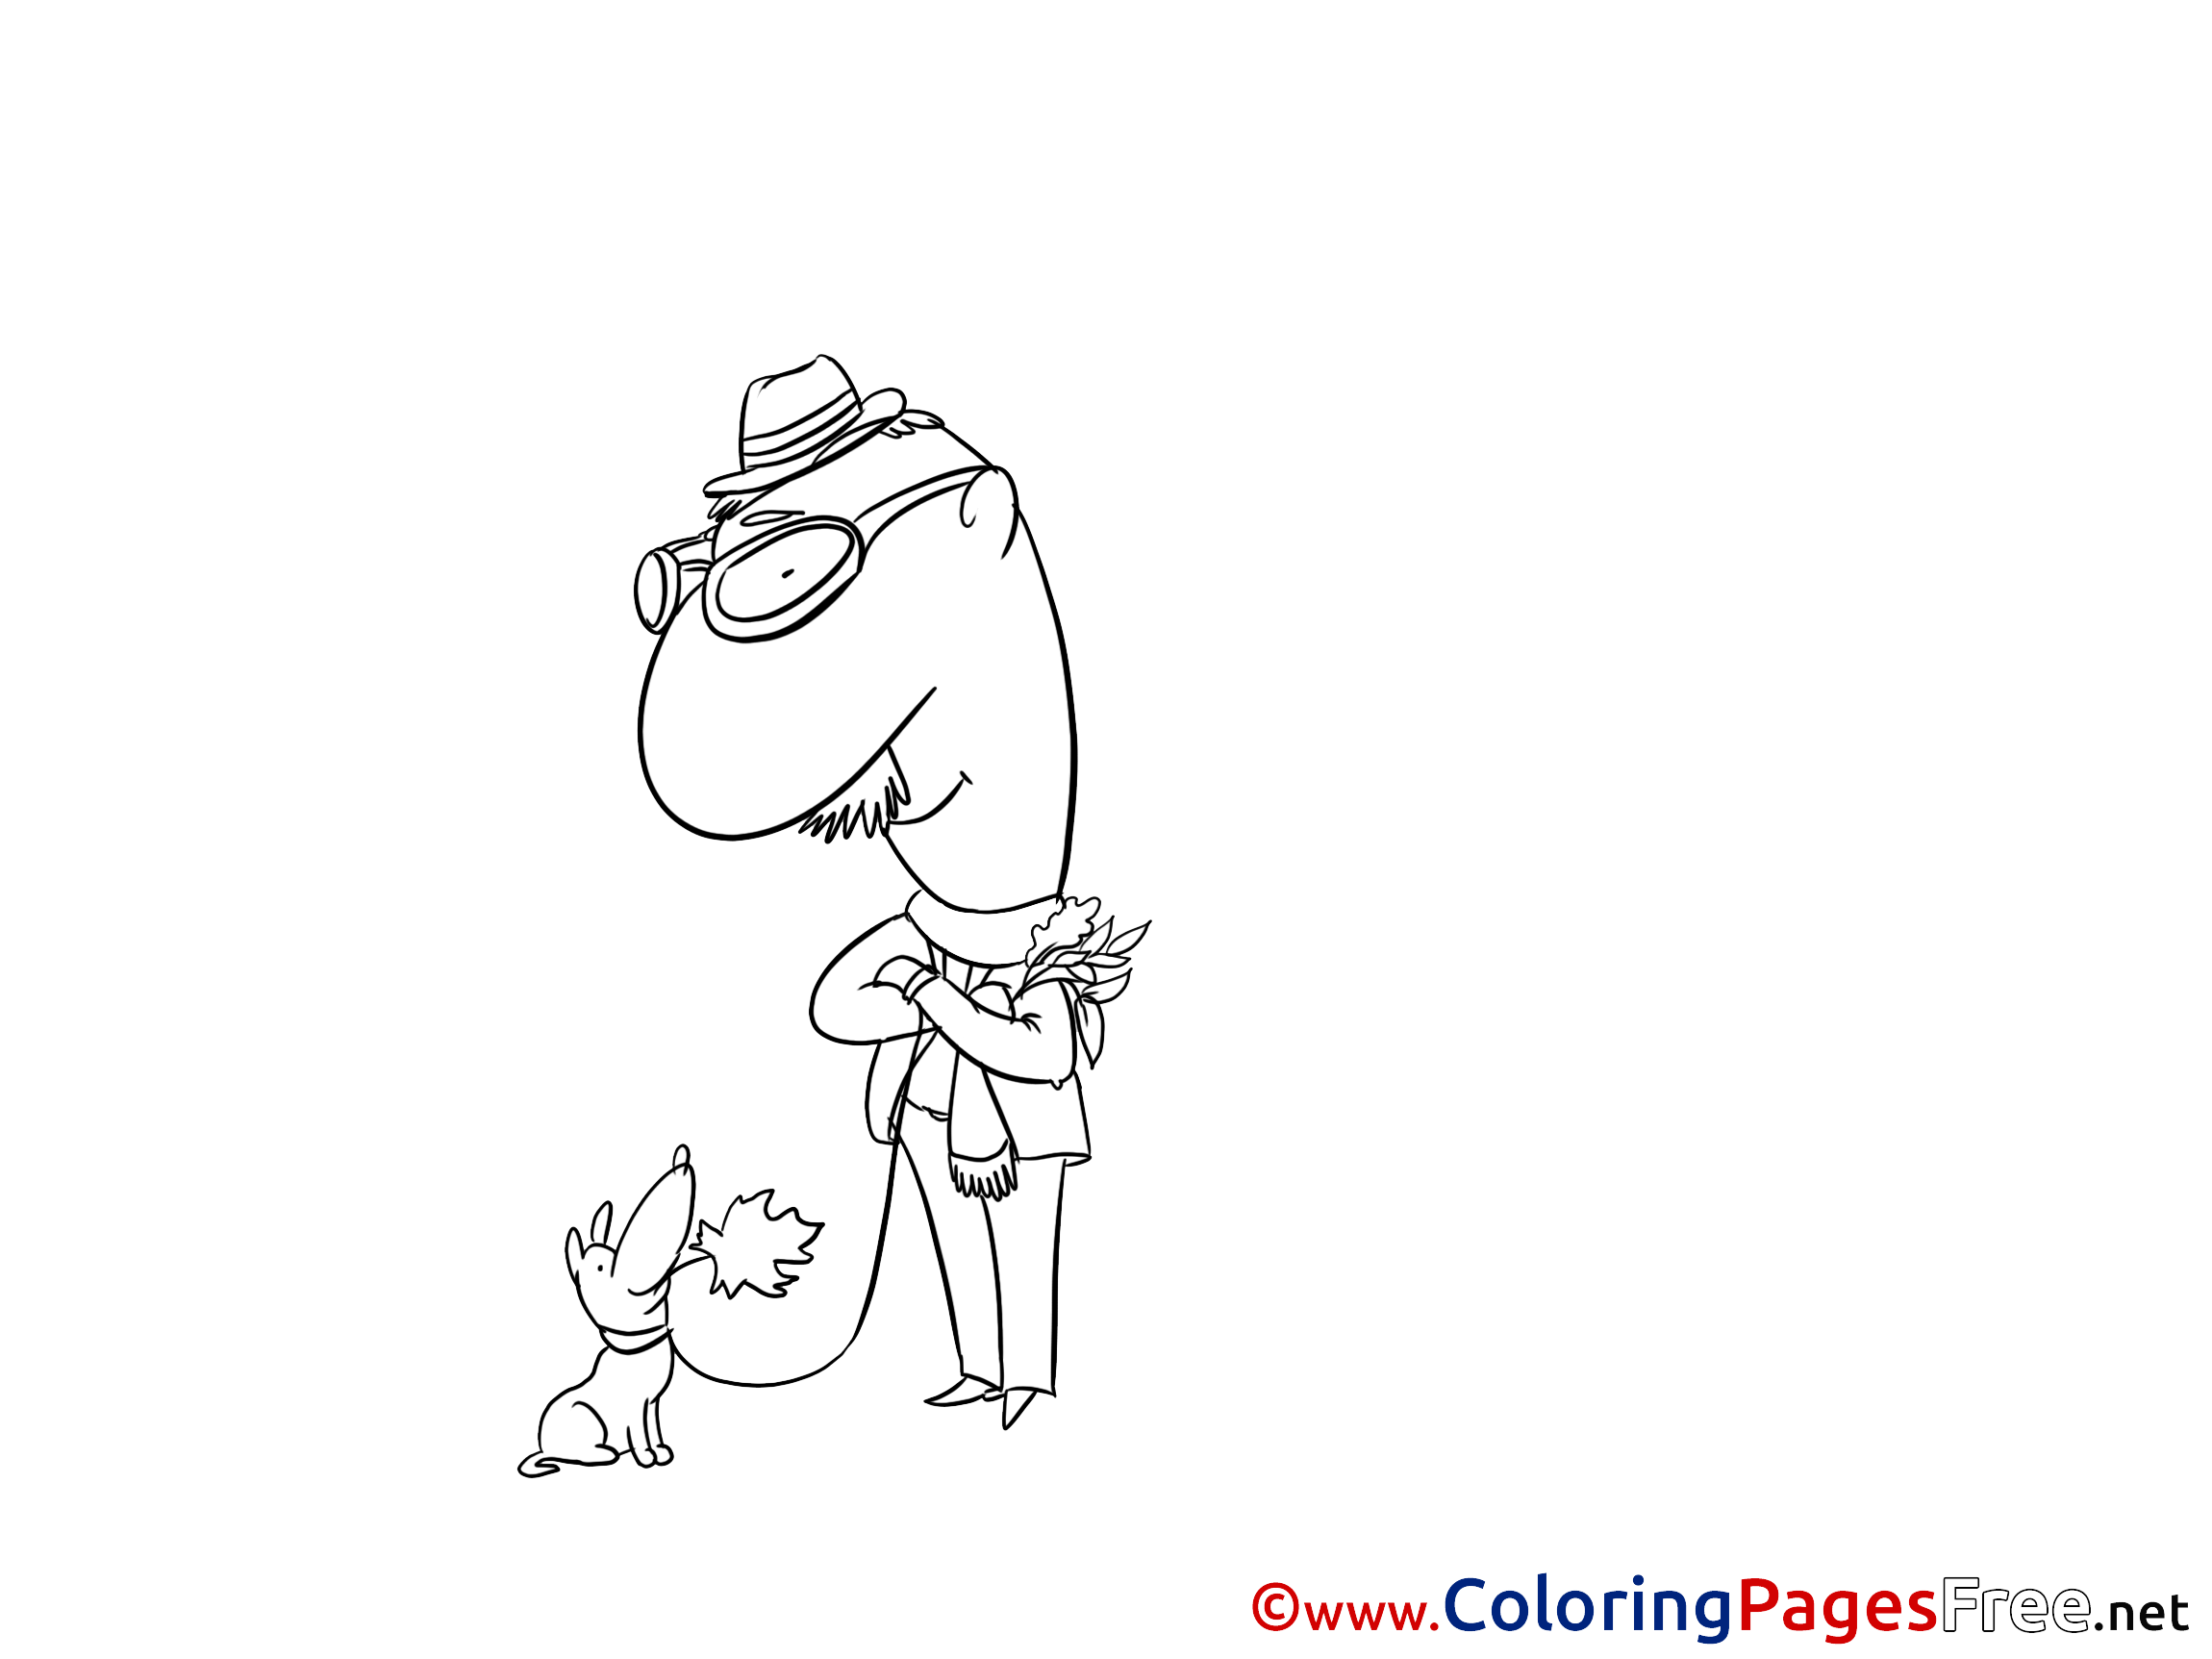 Man Dog Coloring Pages for free